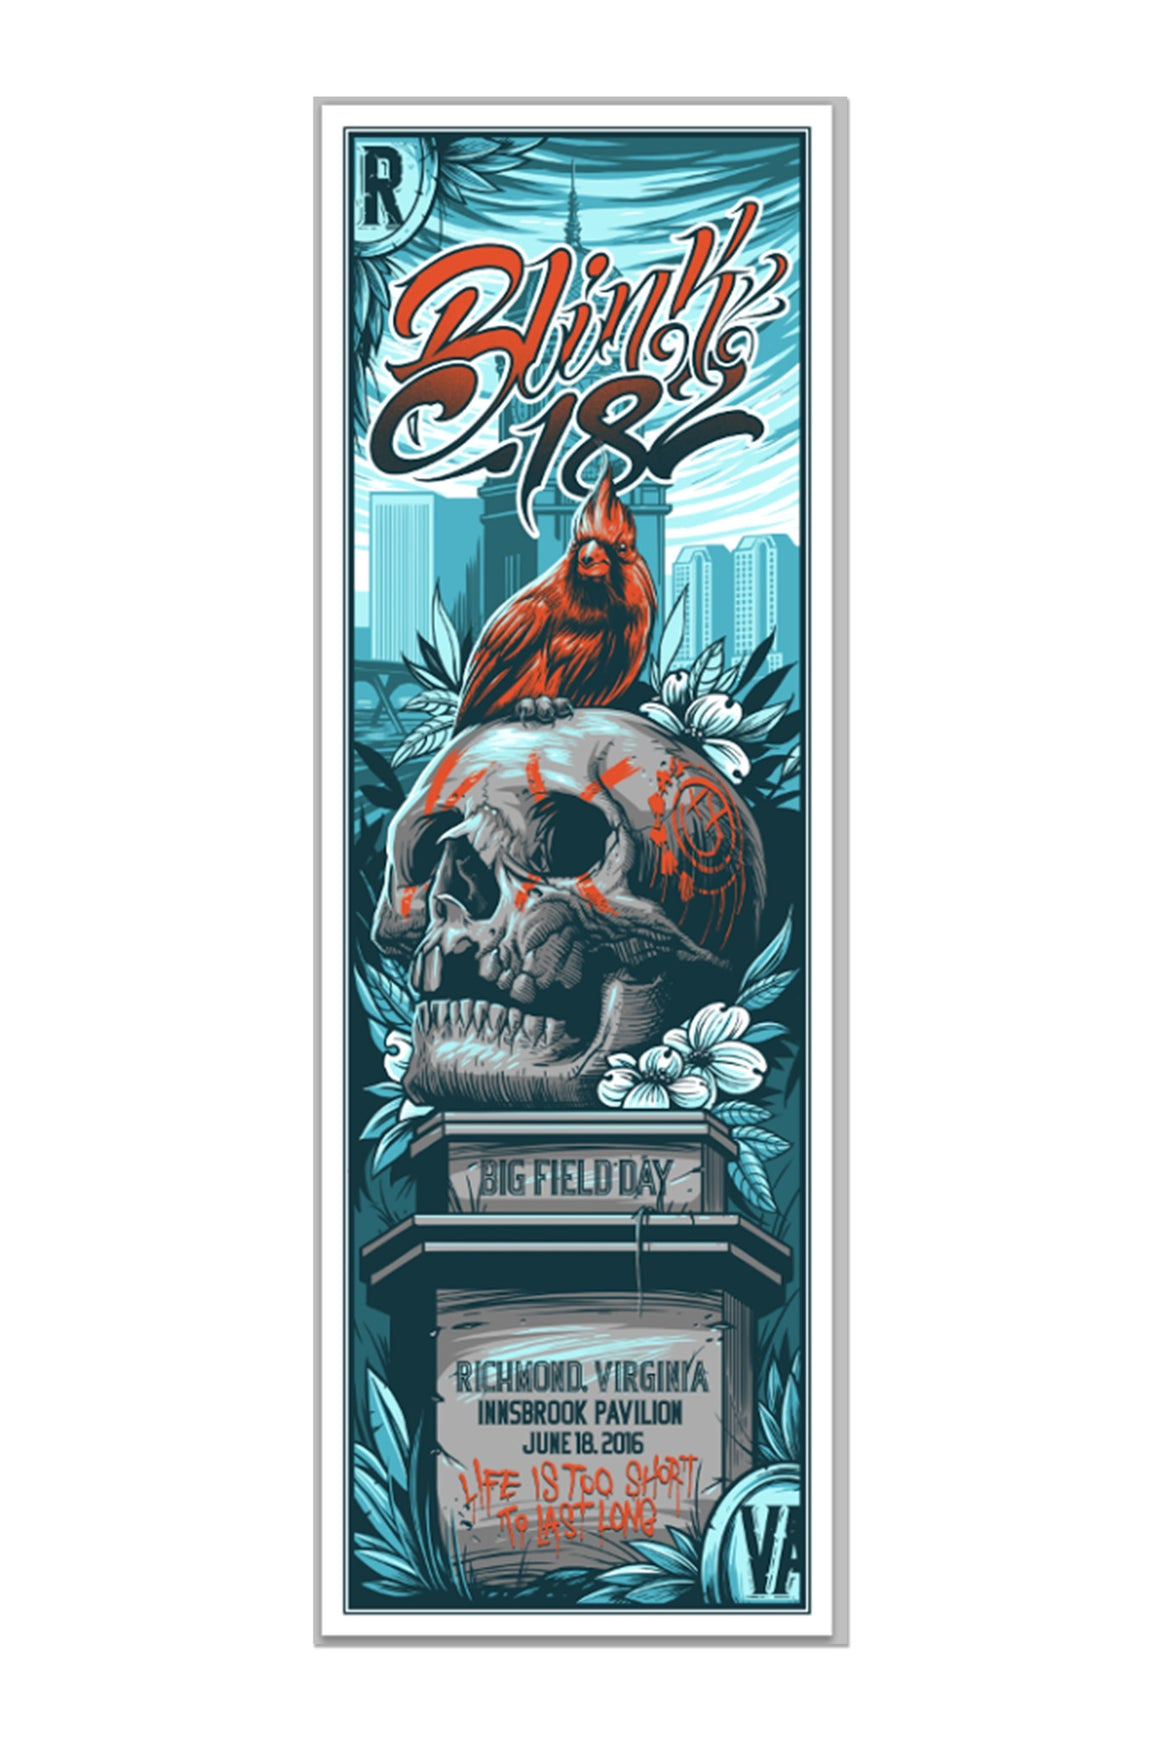 blink-182 6/18/2016 Richmond, VA Event Poster